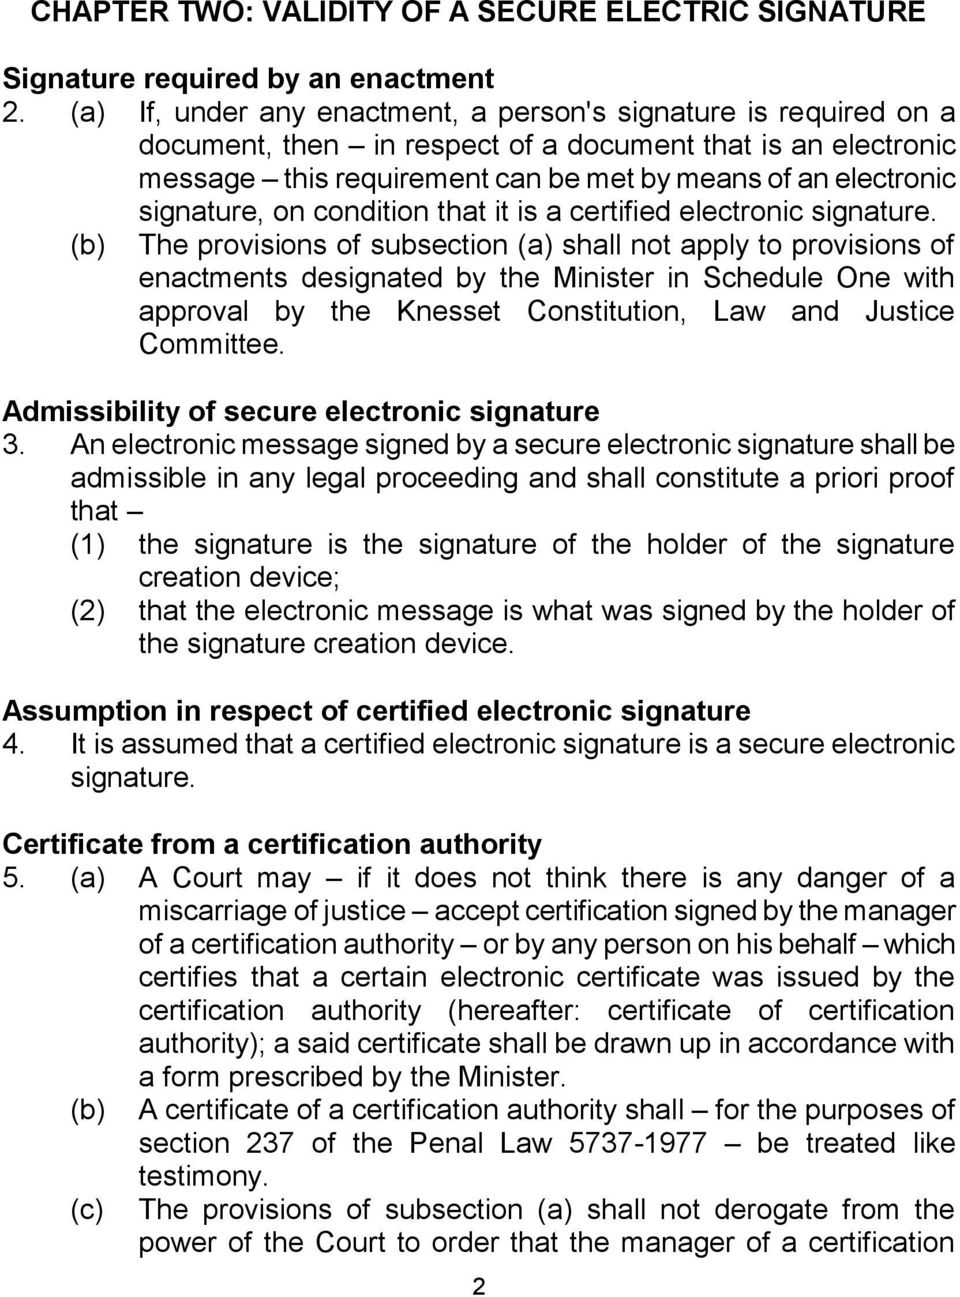 signature, on condition that it is a certified electronic signature.